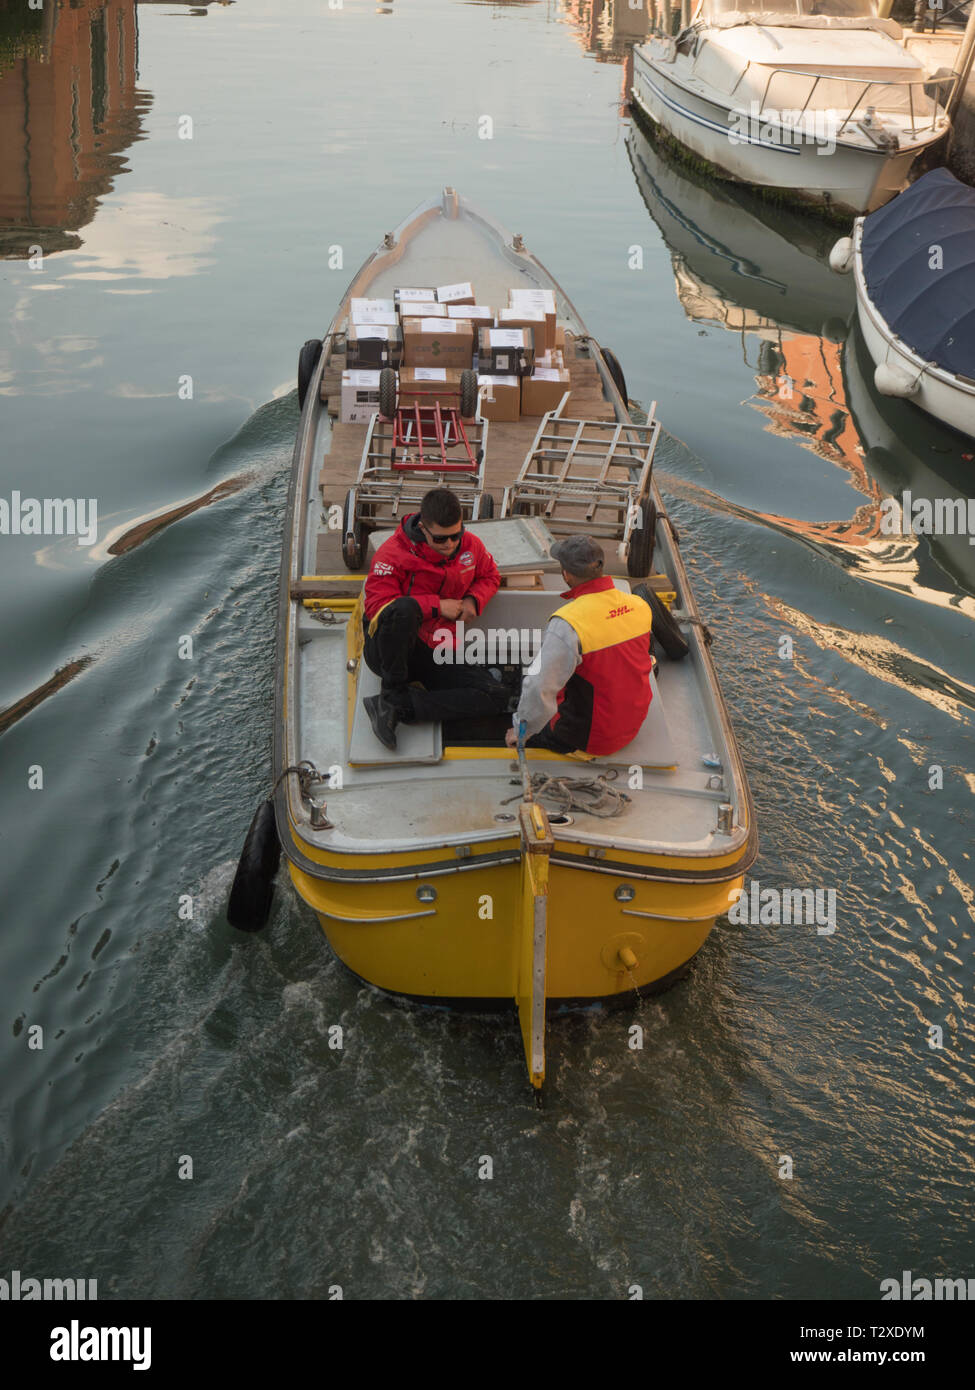 Waterborne canal delivery of mail and parcels by DHL in Venice - Stock Image